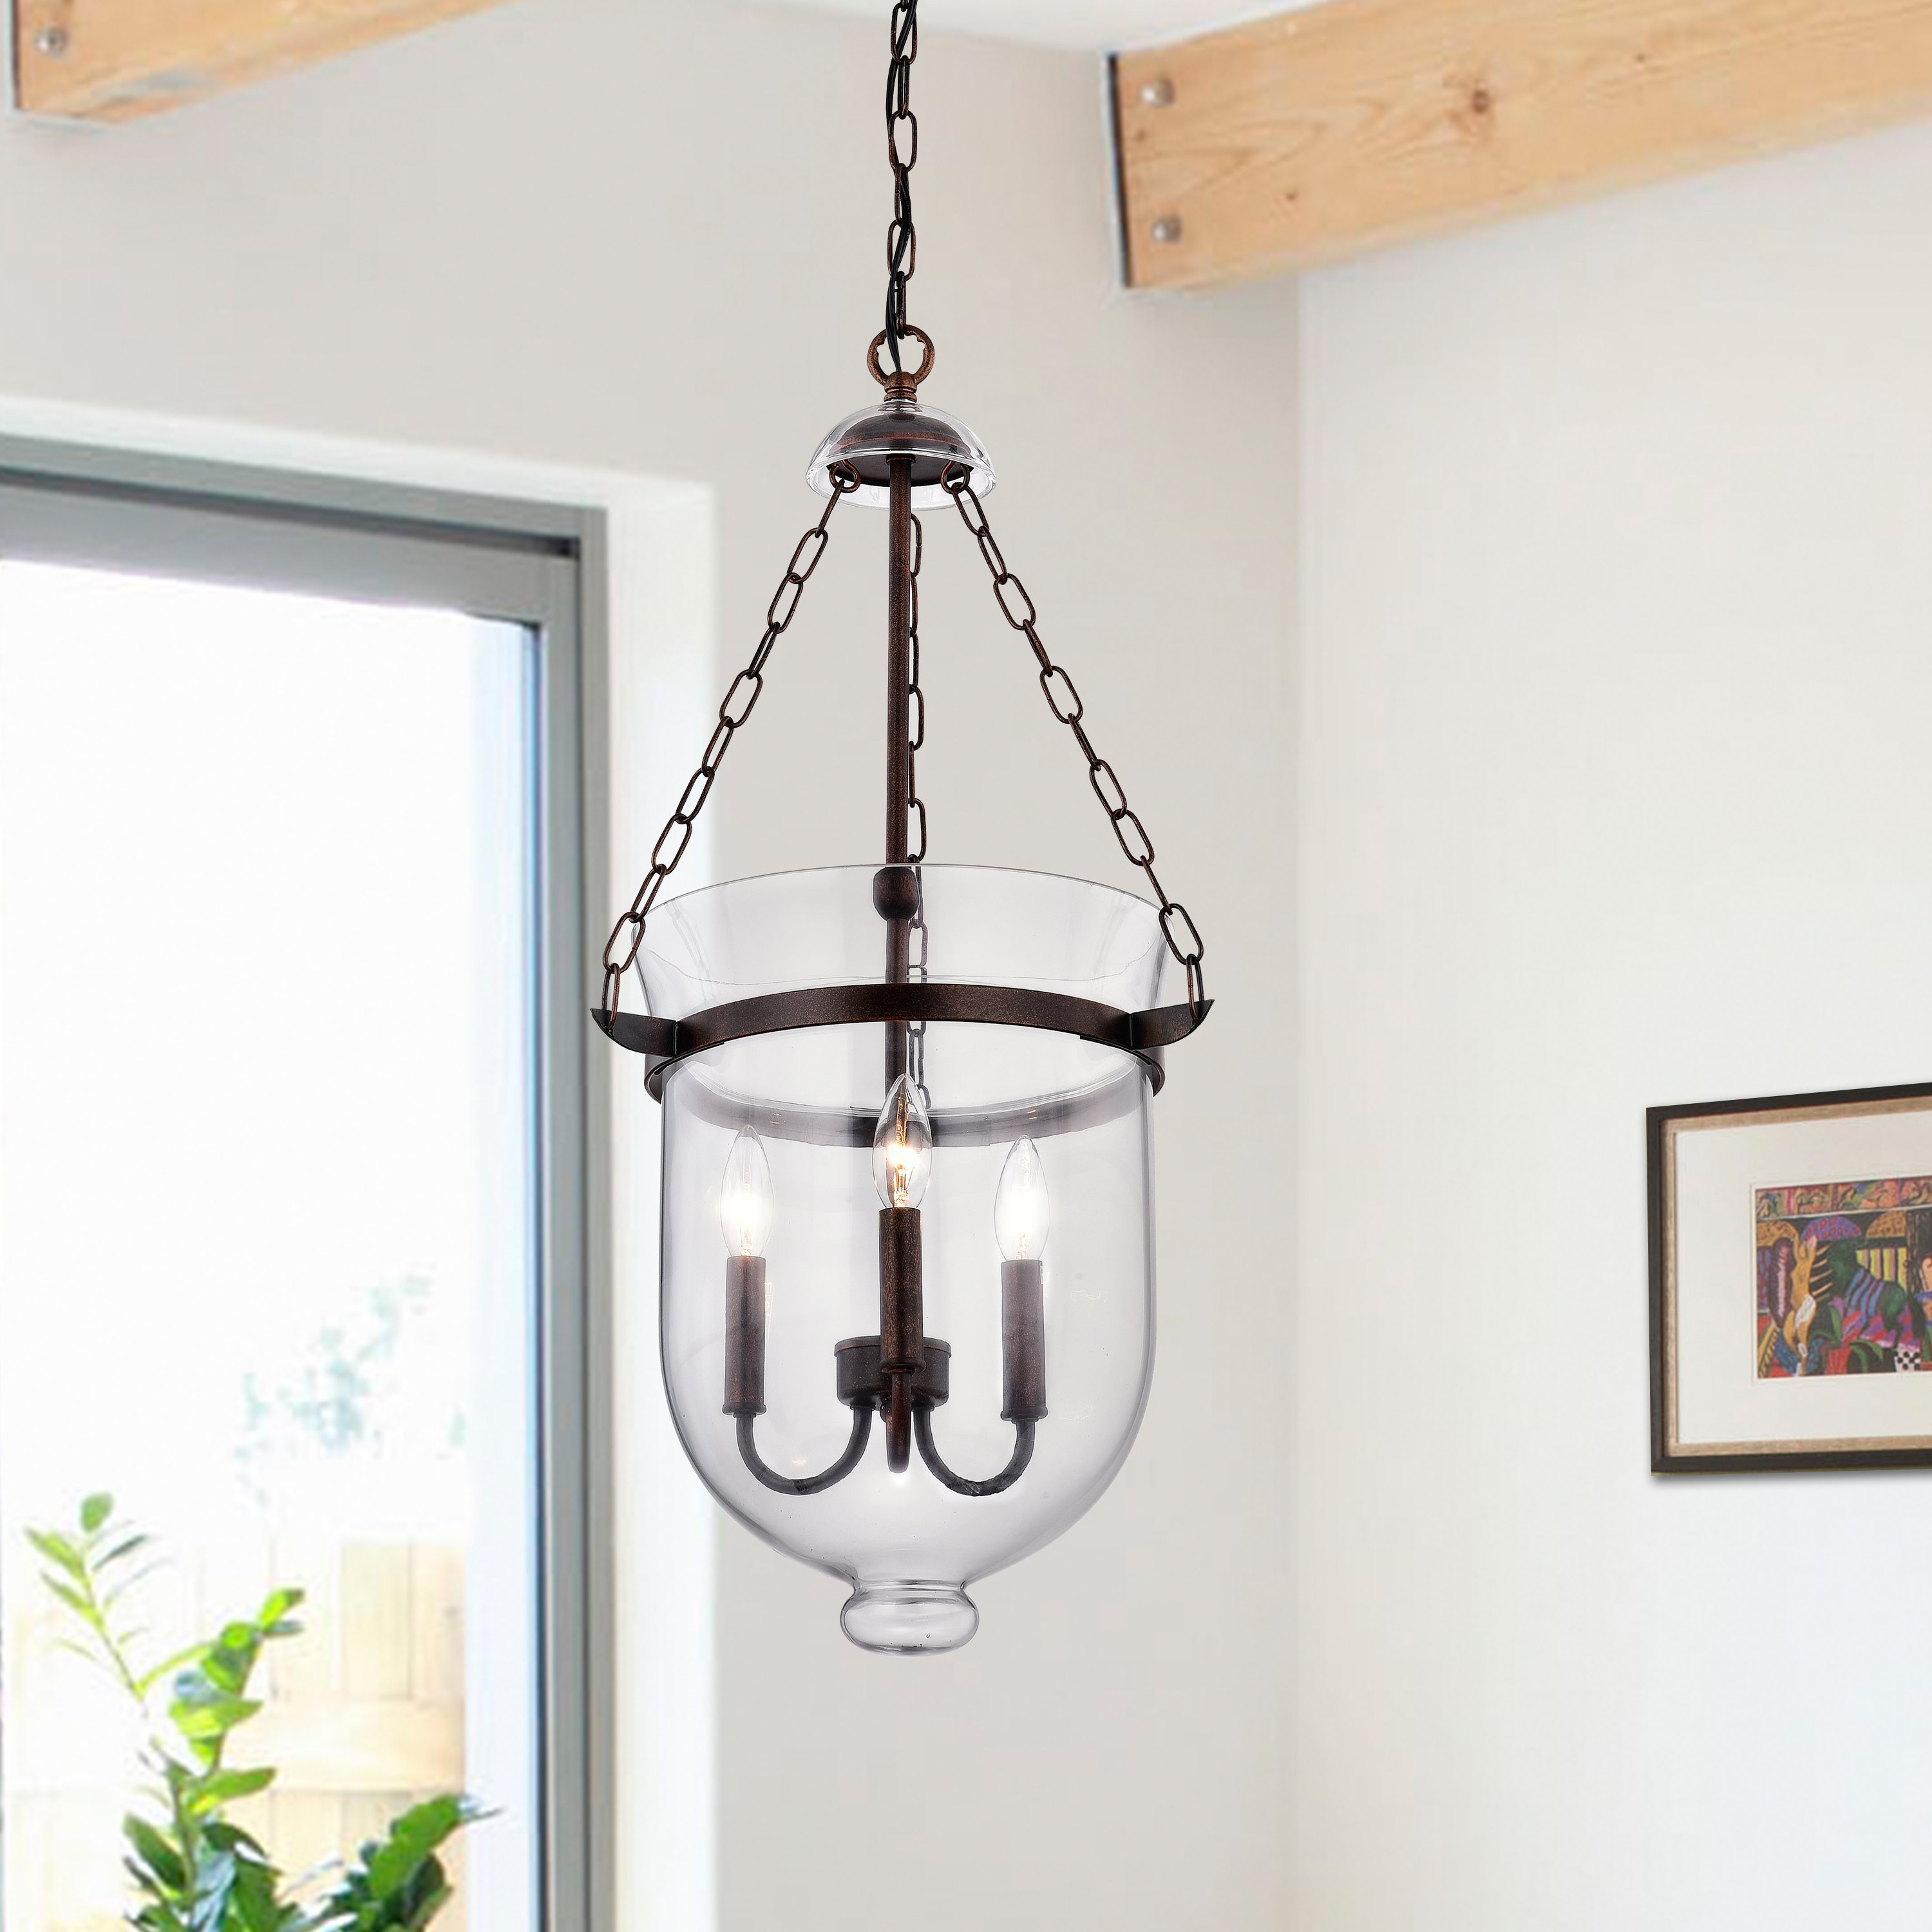 Erdmann 3-Light Single Urn Pendant throughout 3-Light Single Urn Pendants (Image 12 of 30)